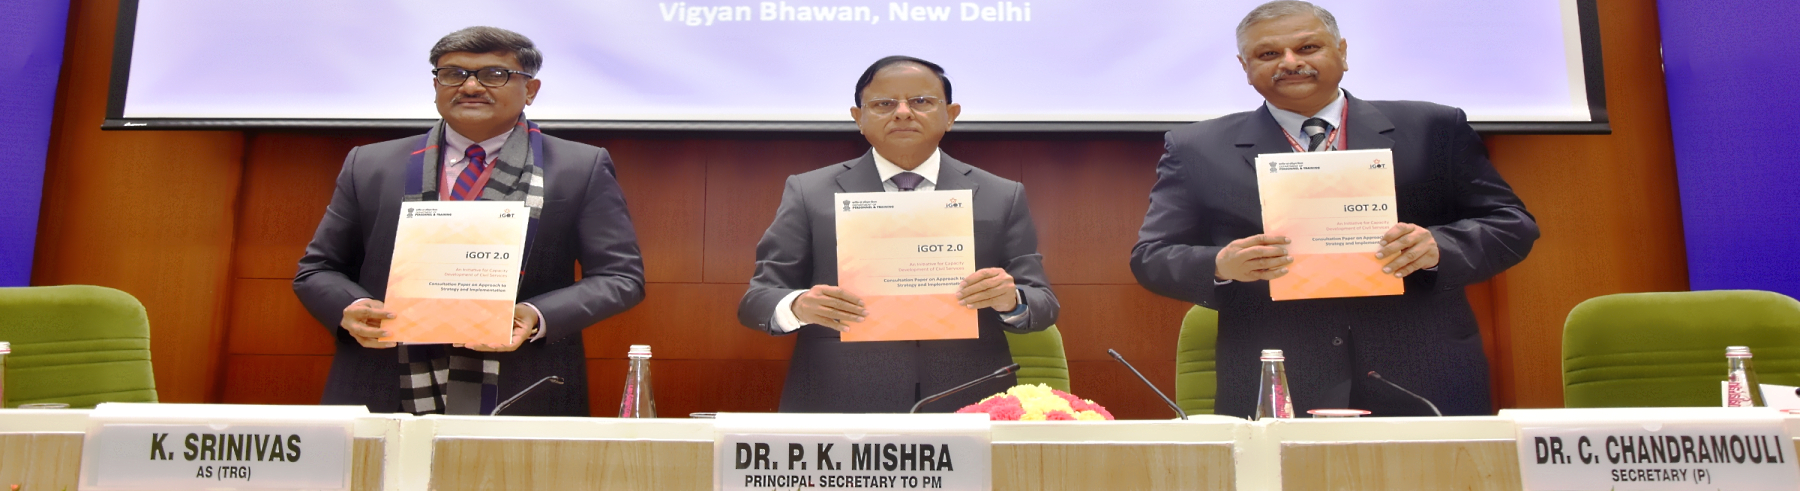 Conference on Capacity Building Reforms and Integrated Government Online Training (iGOT) organized by Department of Personnel & Training on 04.02.2020 at Vigyan Bhawan, New Delhi